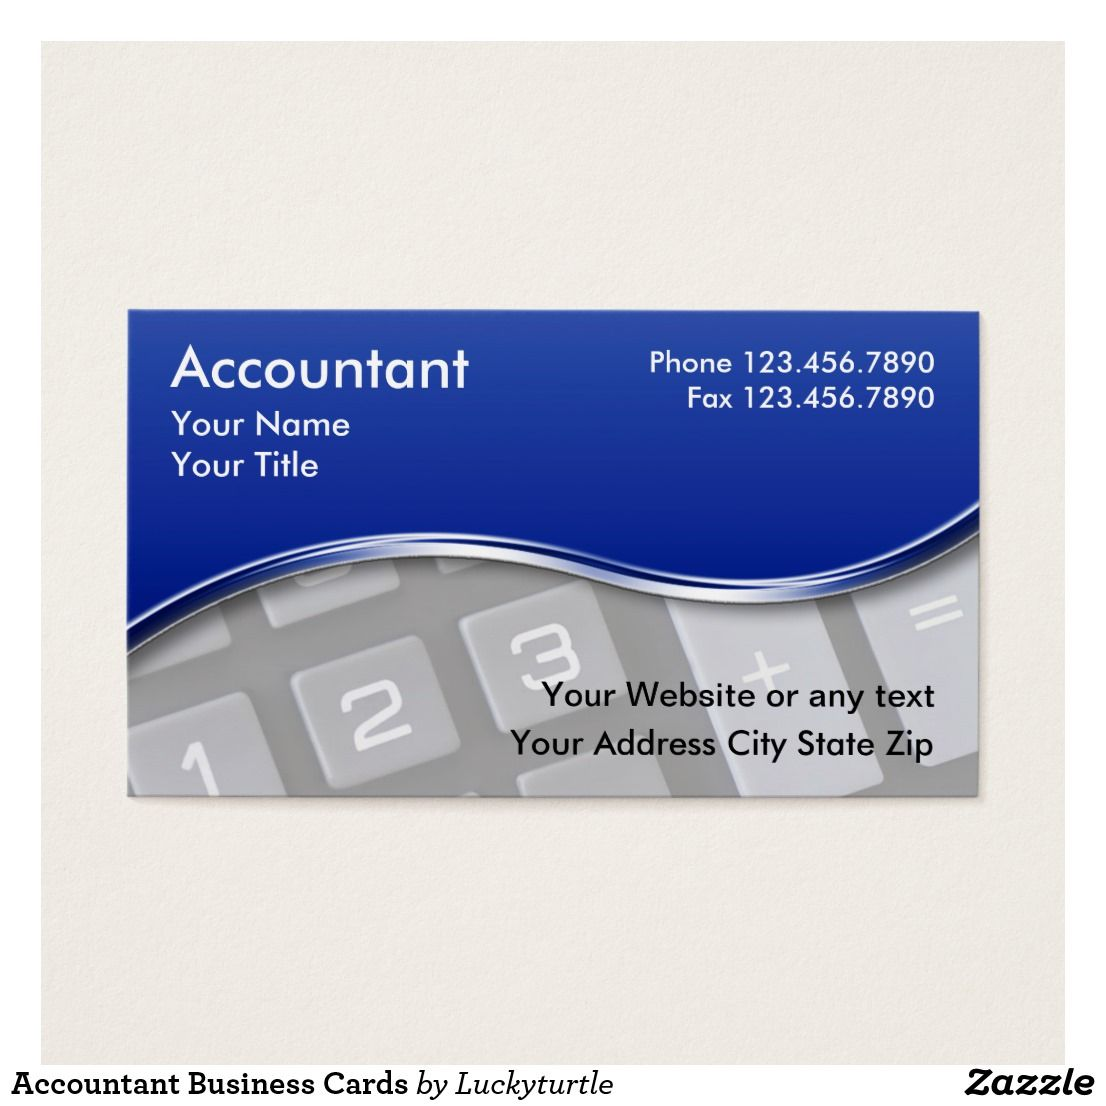 Accountant Business Cards Custom Check out more business card ...